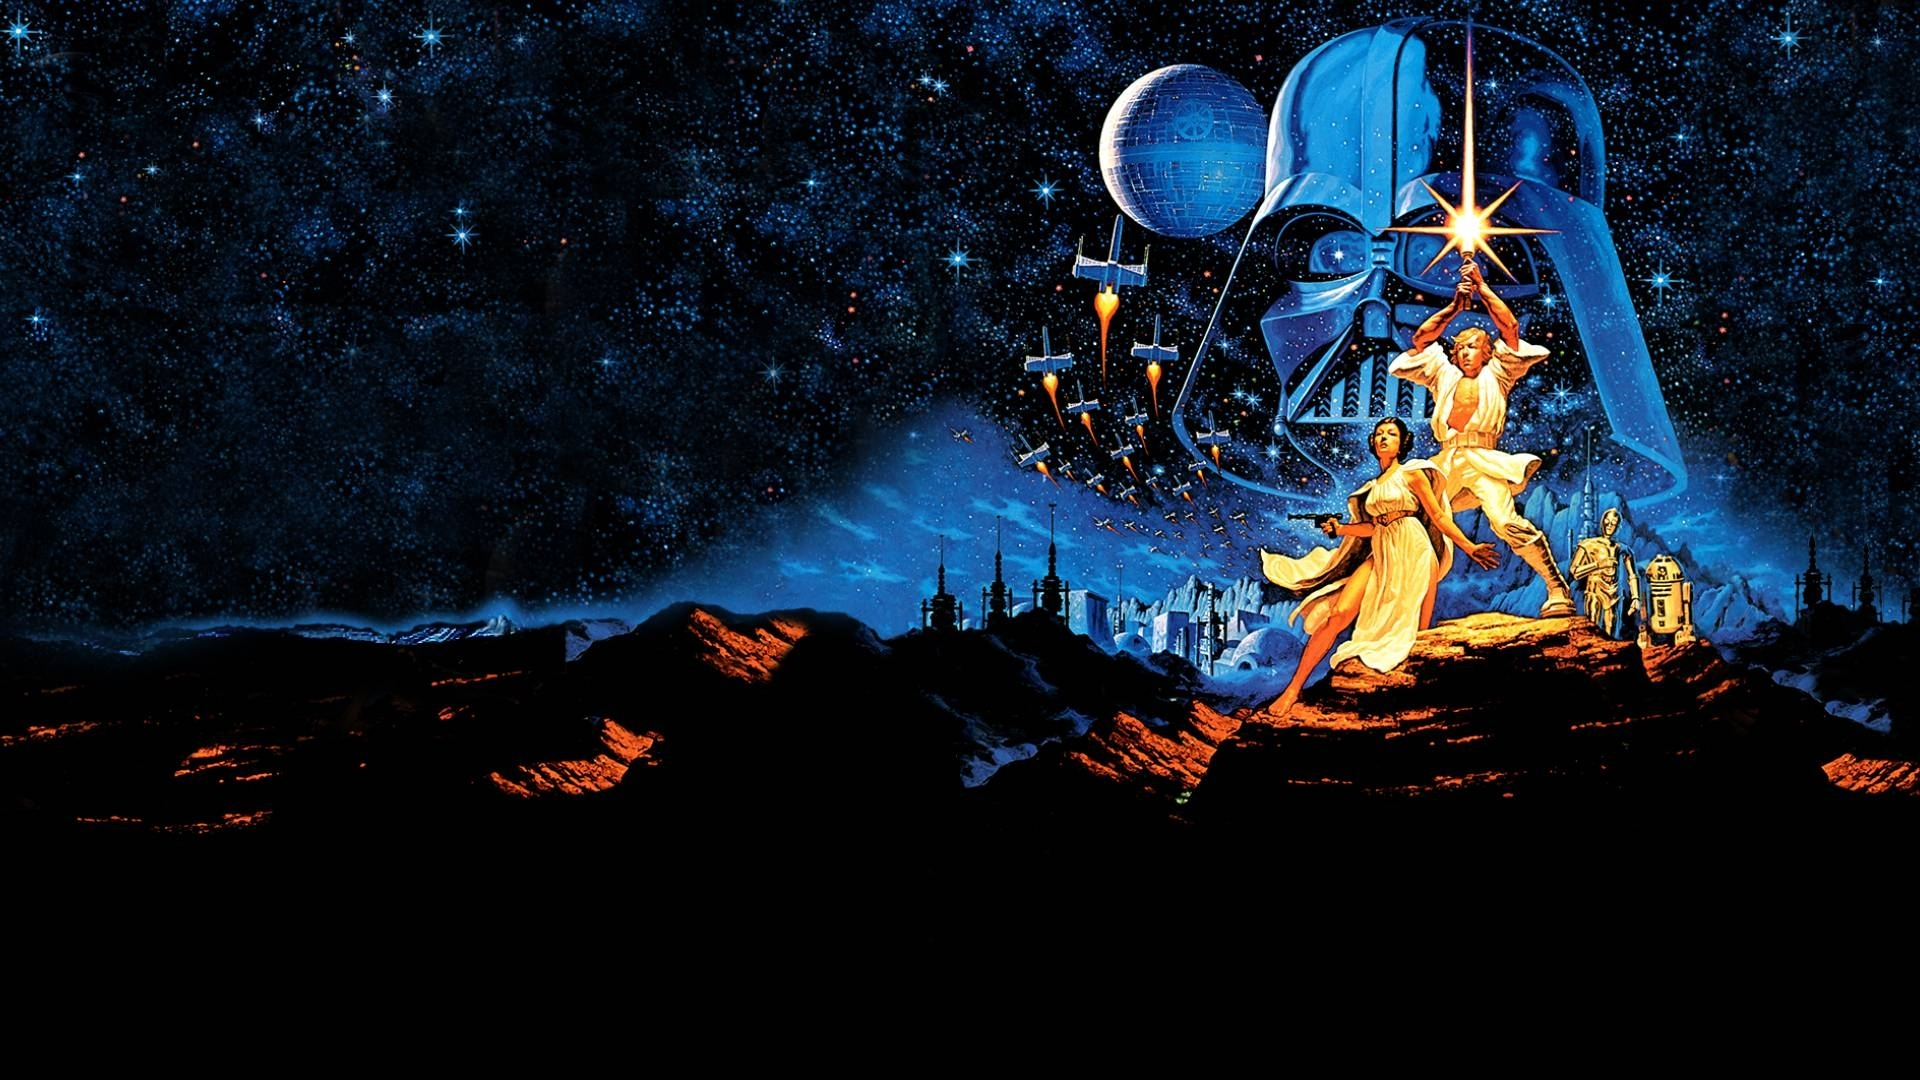 wallpapers – top 89 starwars wallpapers for pc & mac, tablet, laptop